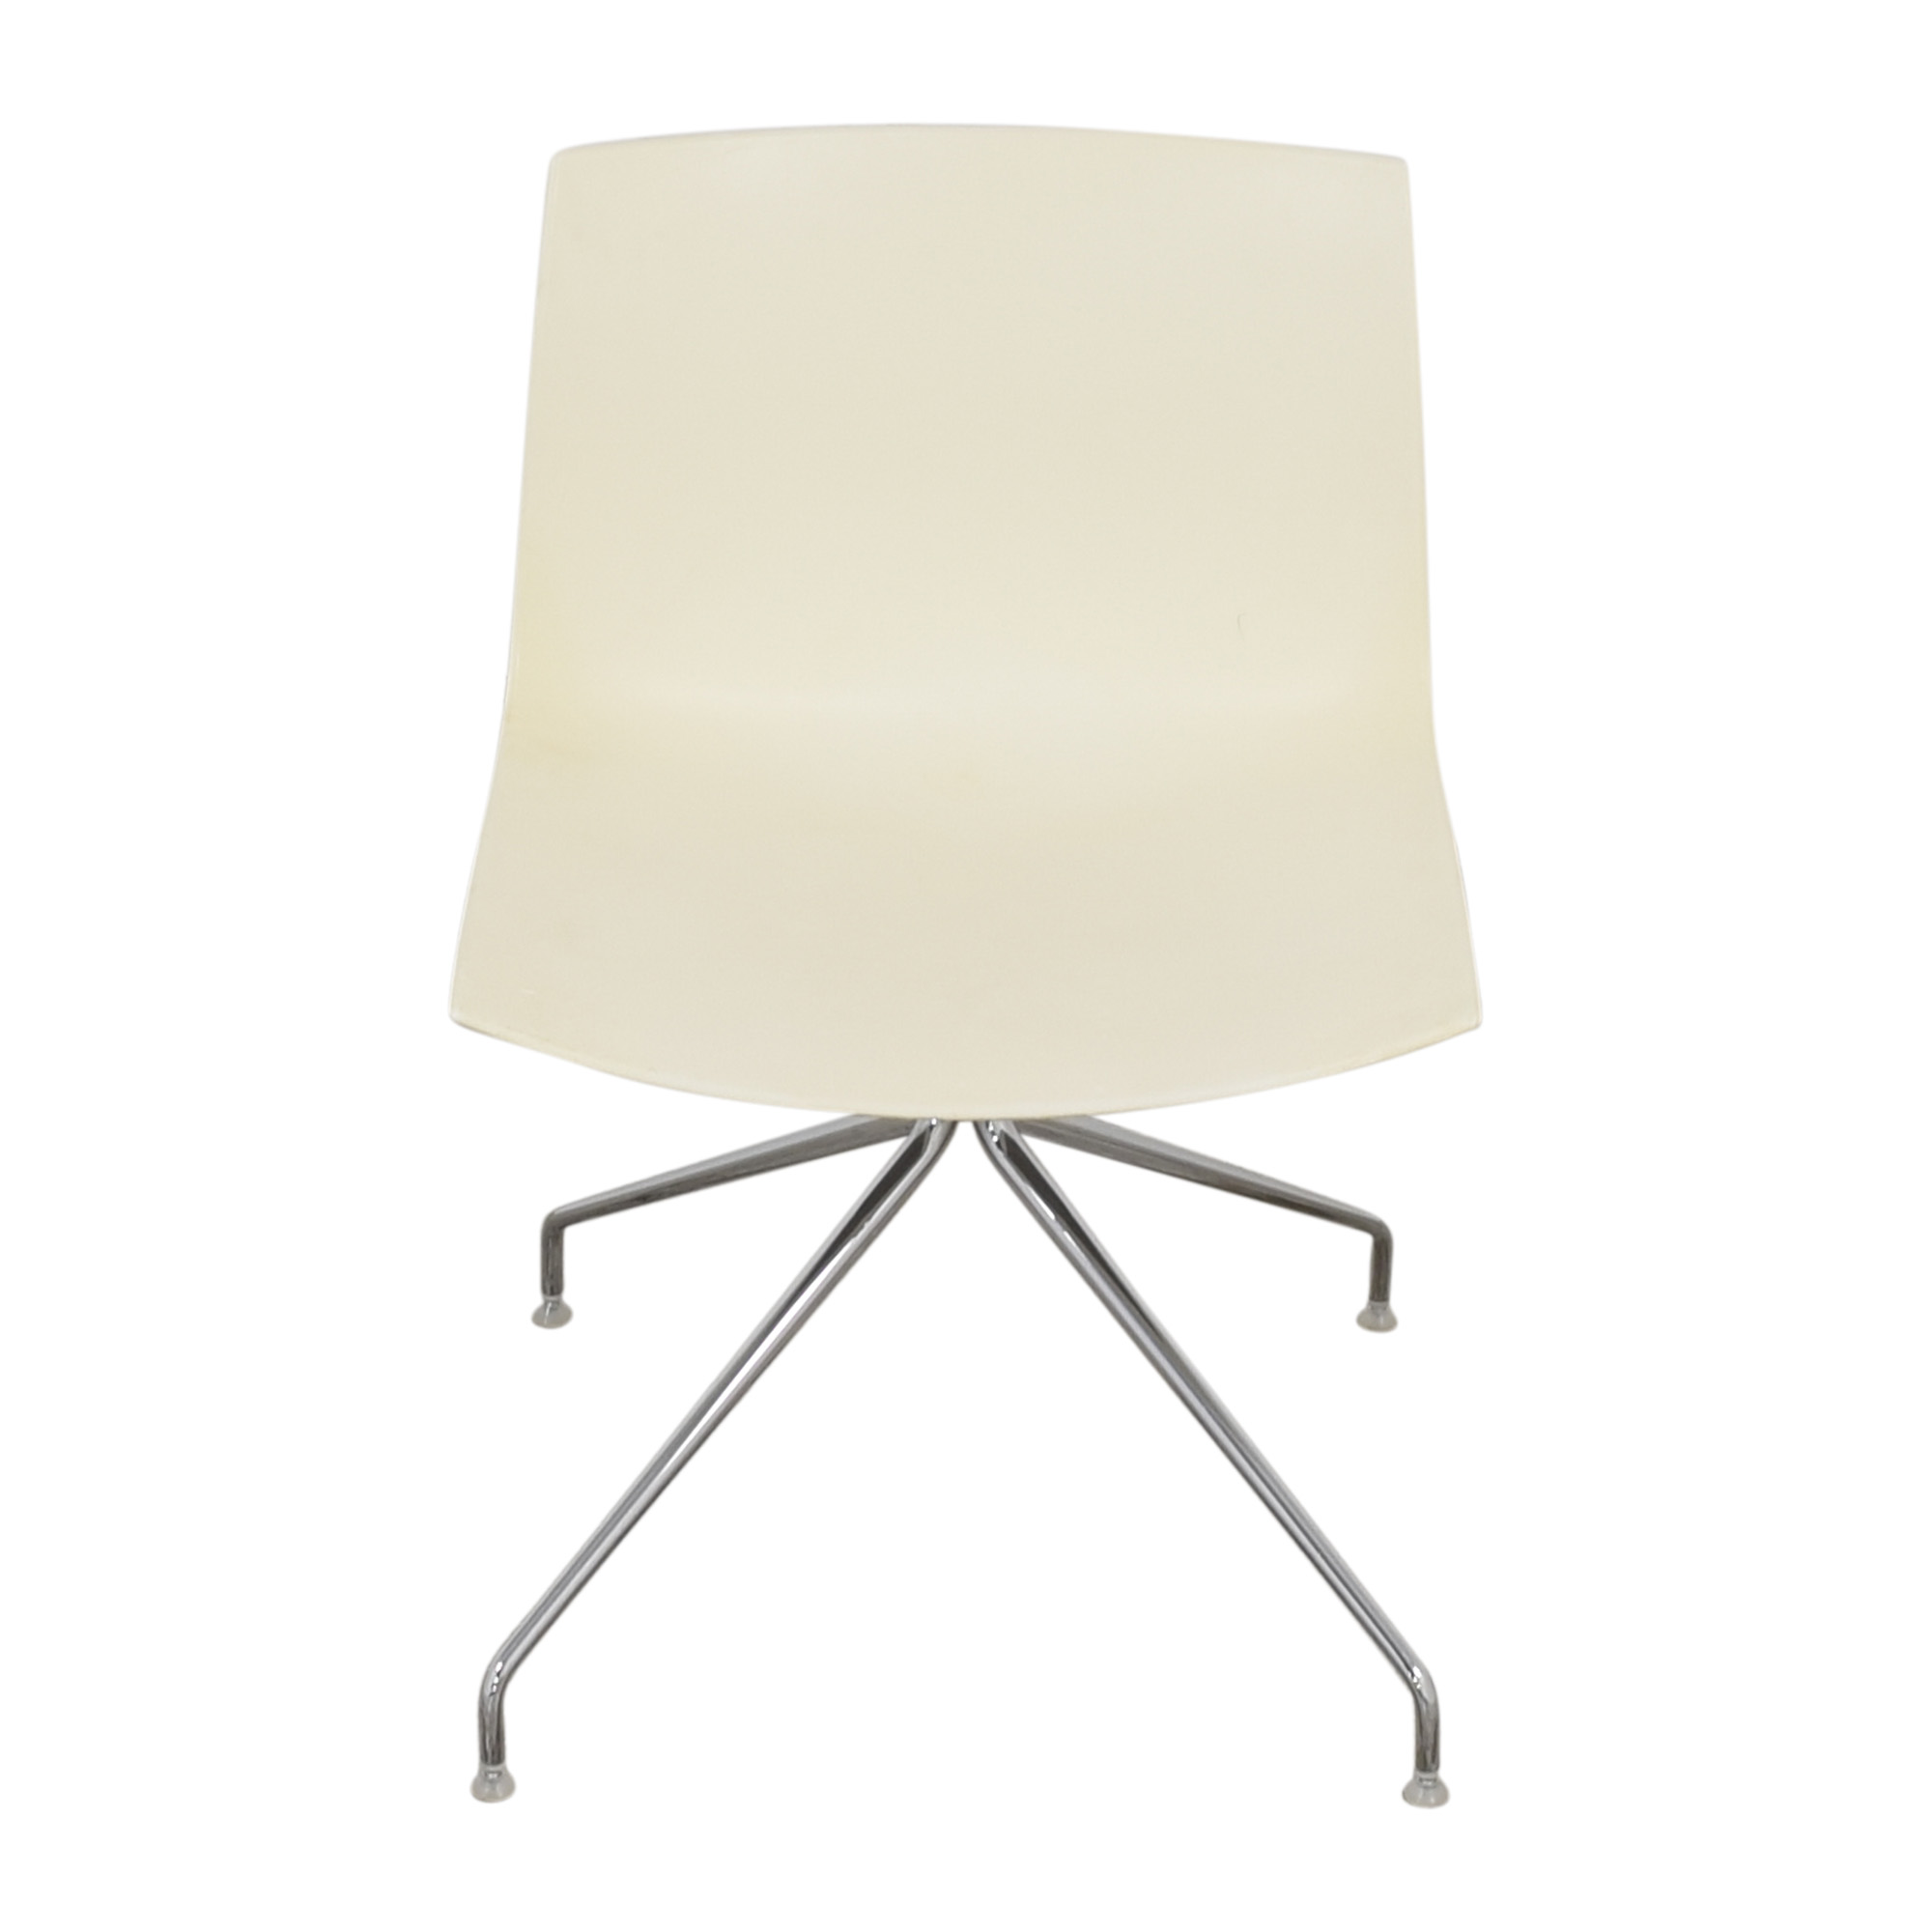 Arper Catifa 46 Trestle Swivel Chair / Home Office Chairs